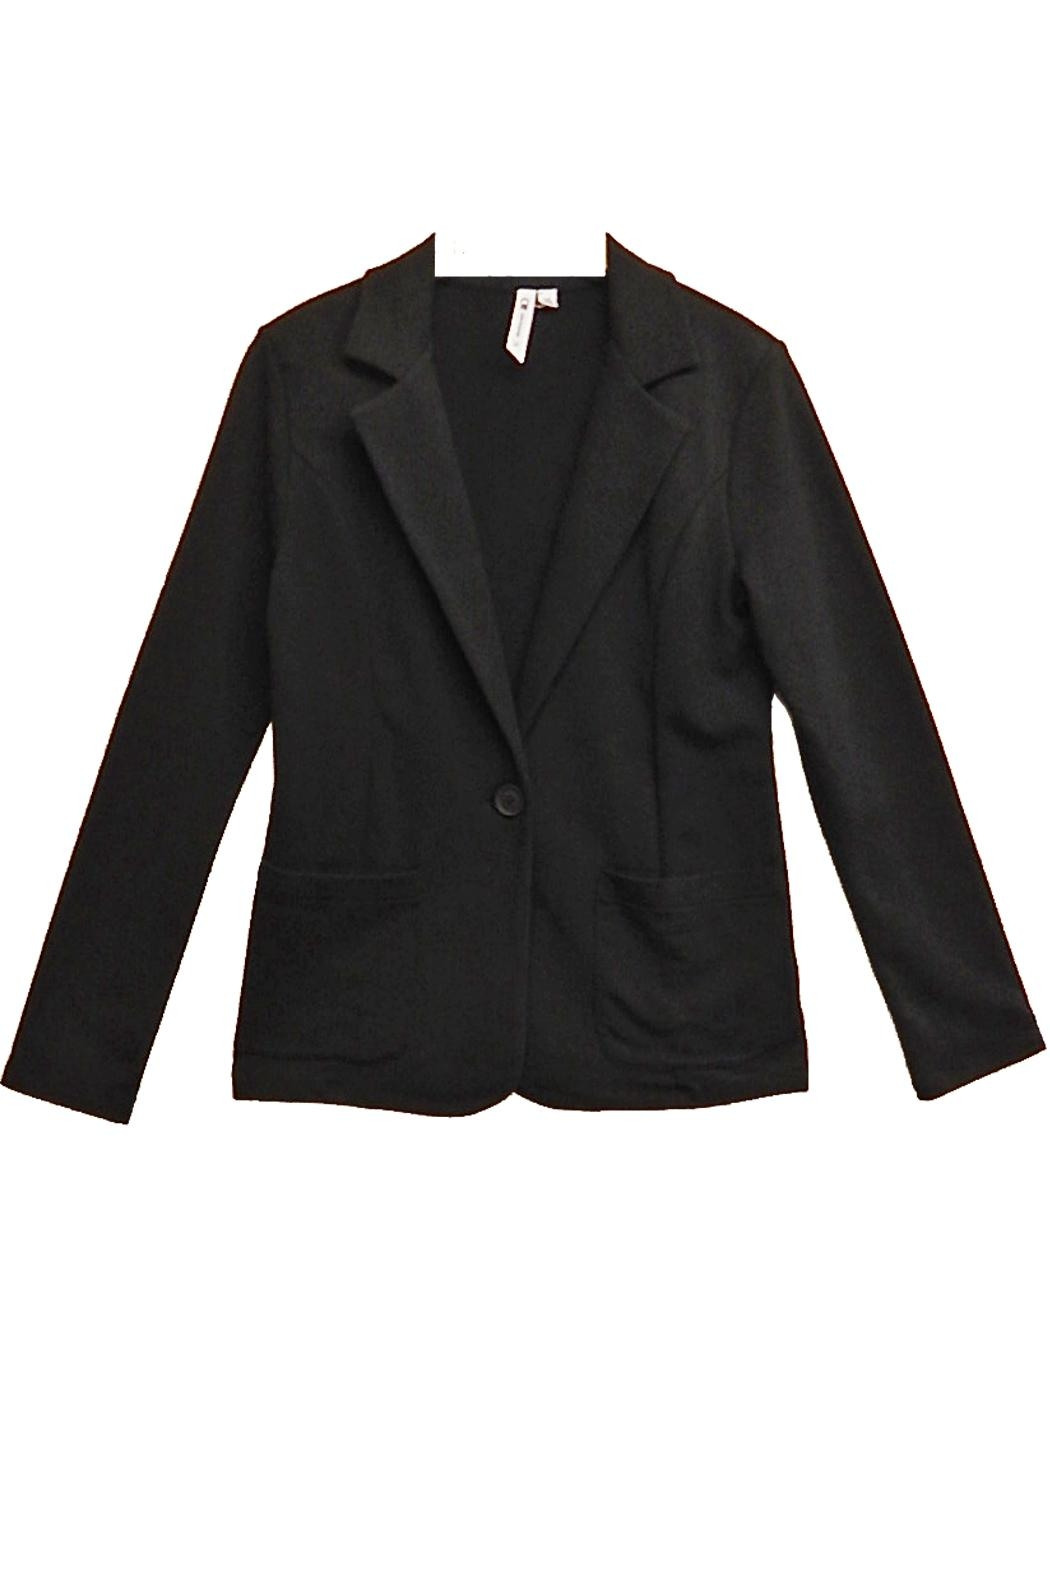 Cable & Gauge Black Blazer - Main Image